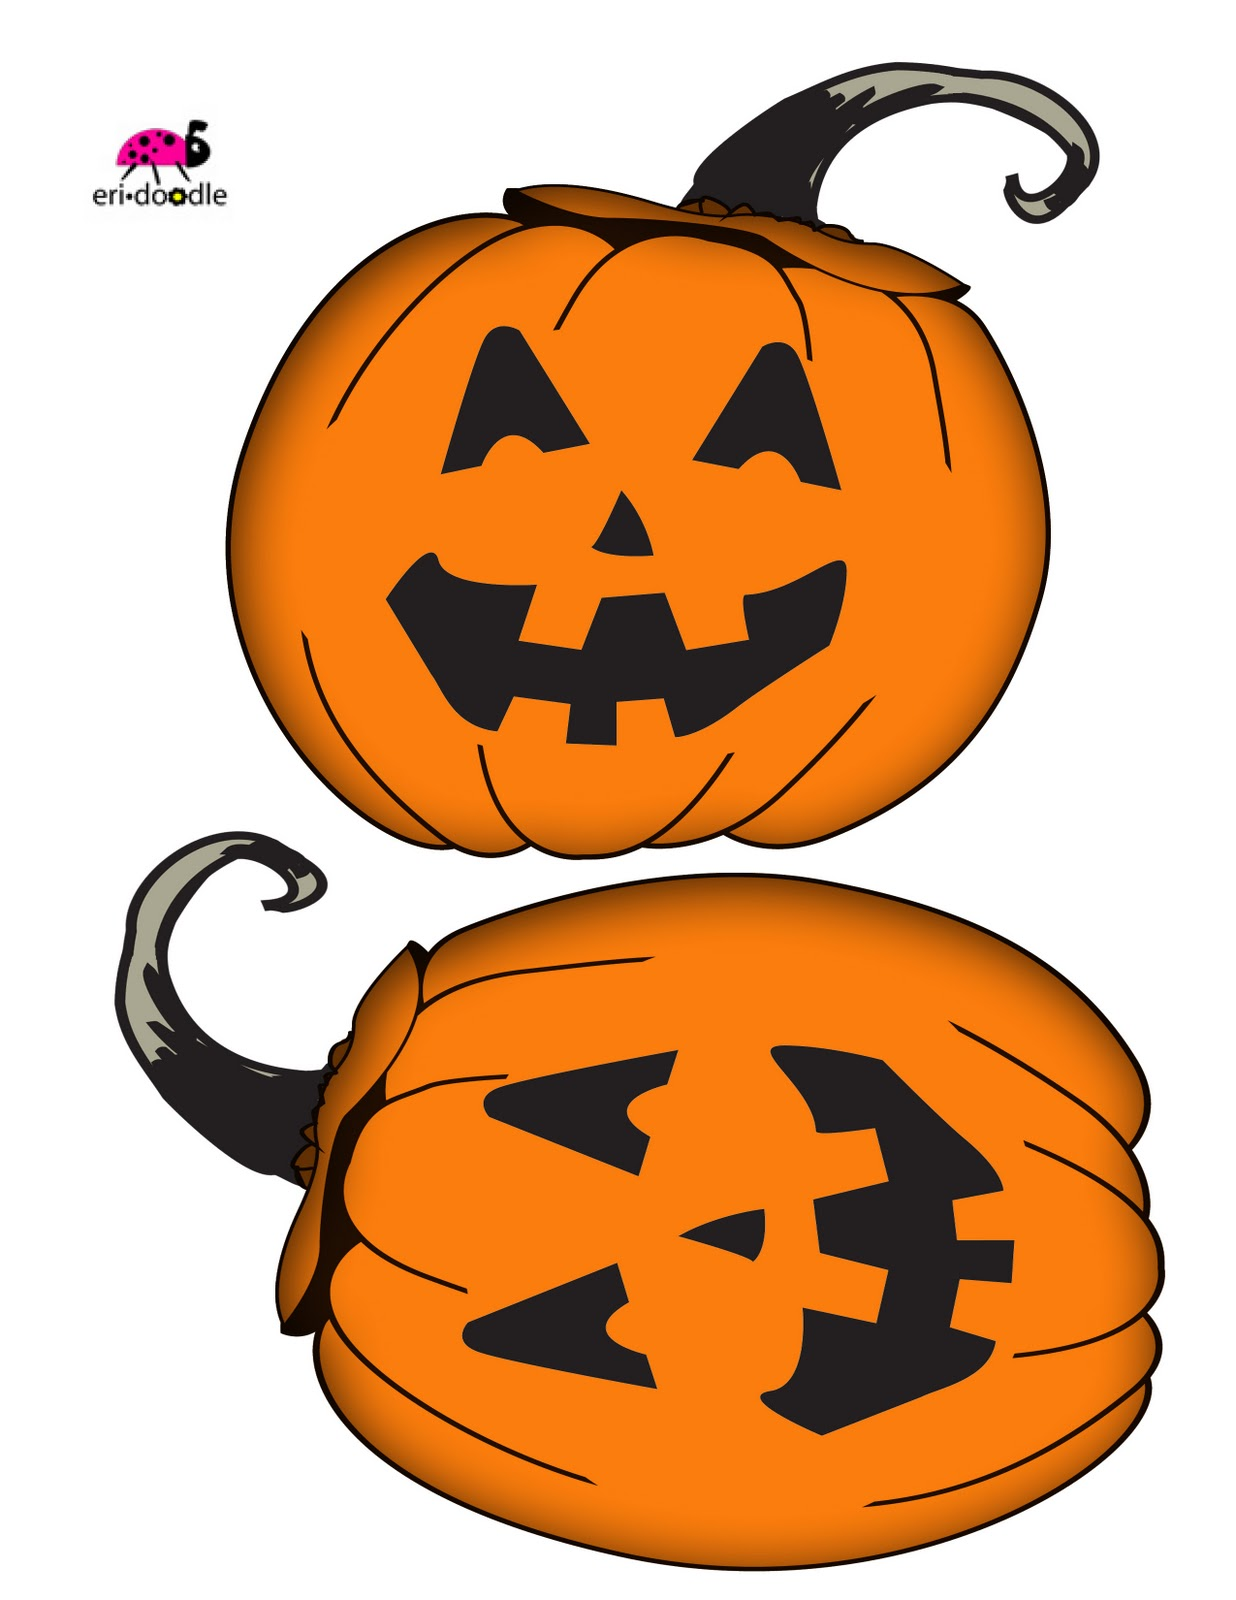 1236x1600 Eri Doodle Designs And Creations Simple Jack O Lantern Goodie Bag